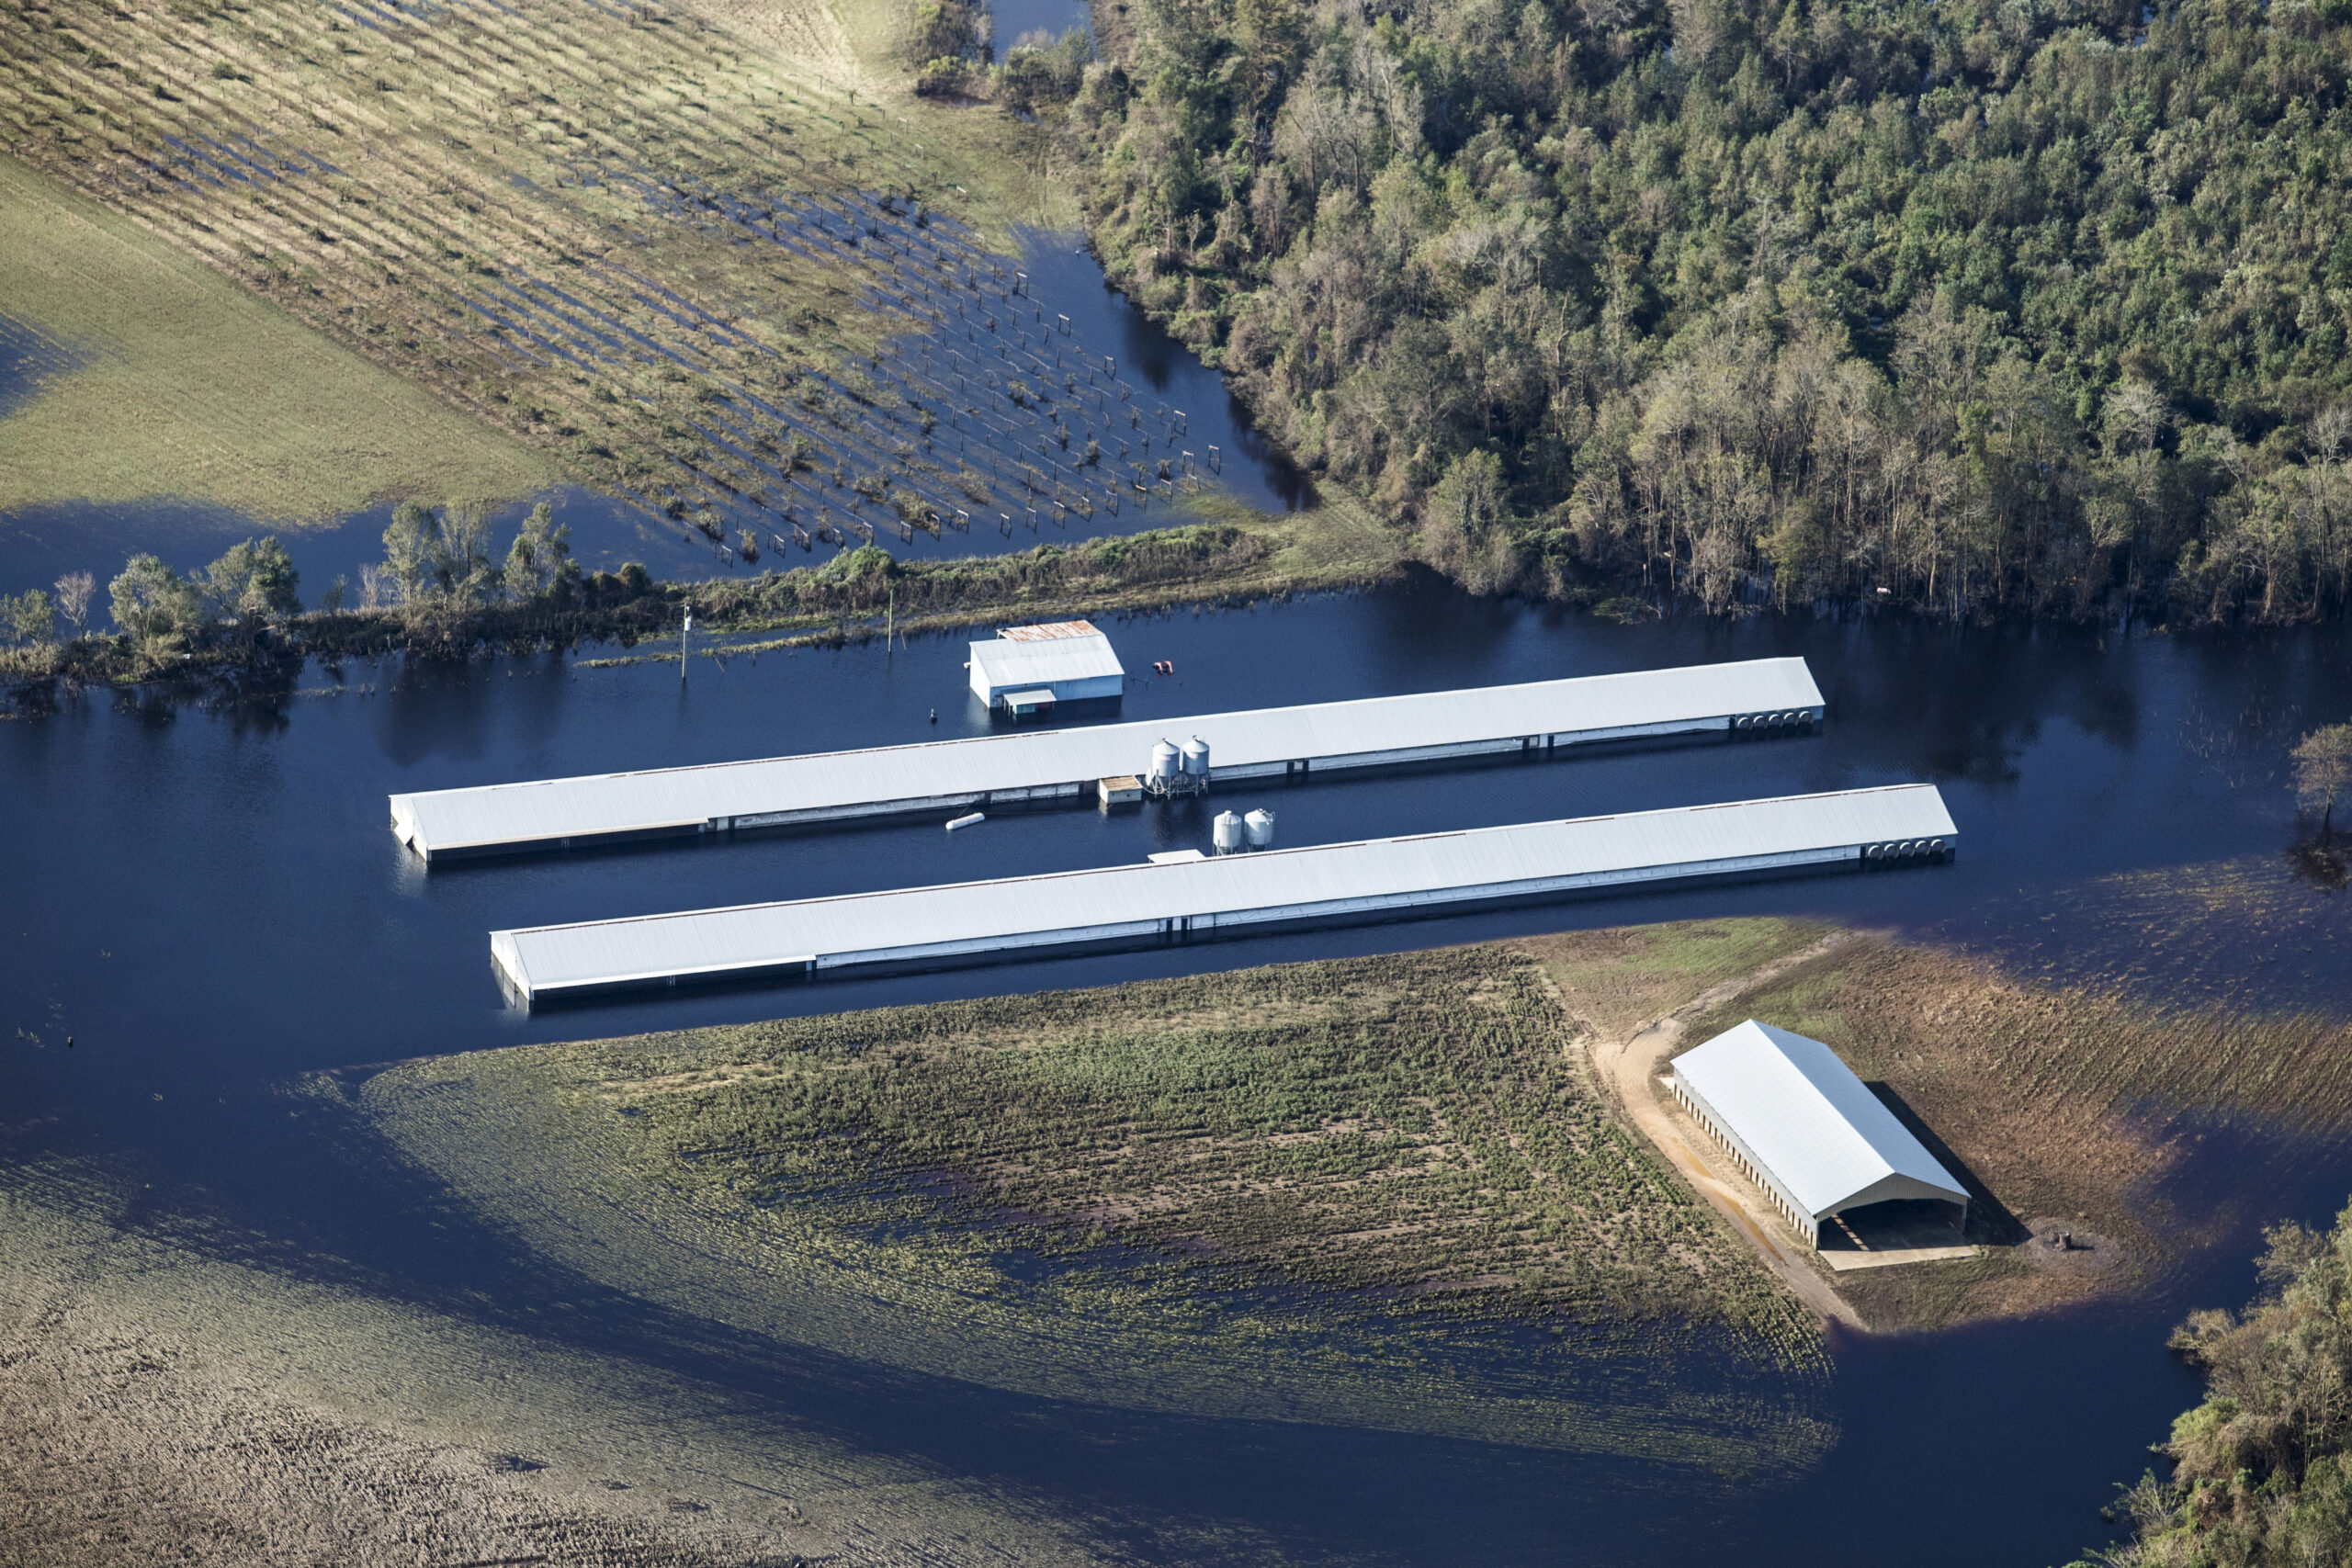 A flooded poultry farm stands in this aerial photograph taken above Chinquapin, North Carolina on Friday, Sept. 21, 2018 after Hurricane Florence. Credit: Alex Wroblewski/Bloomberg via Getty Images